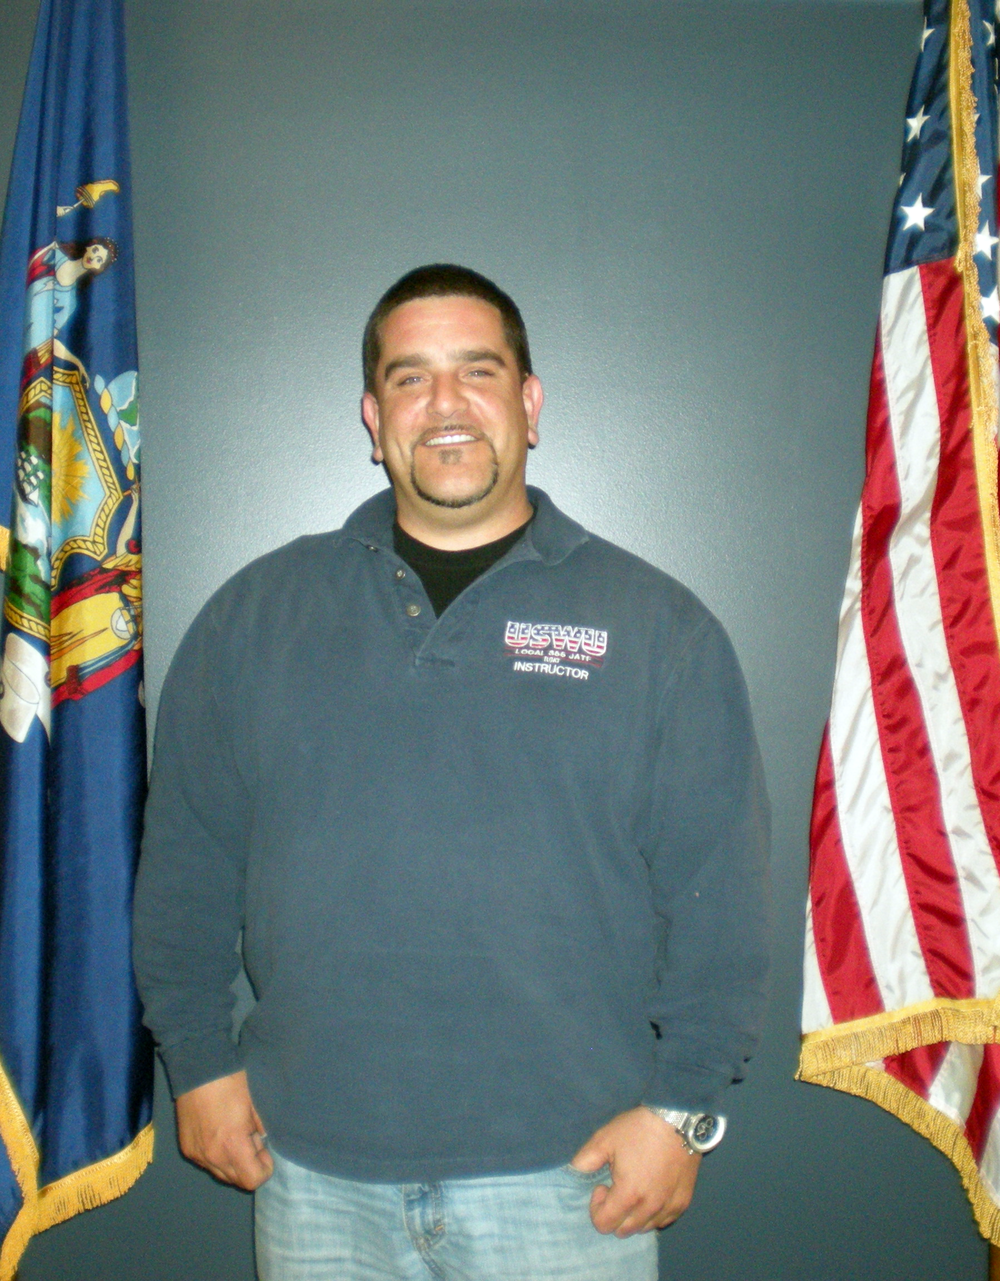 Richard Graziano, Piping-Welding Instructor